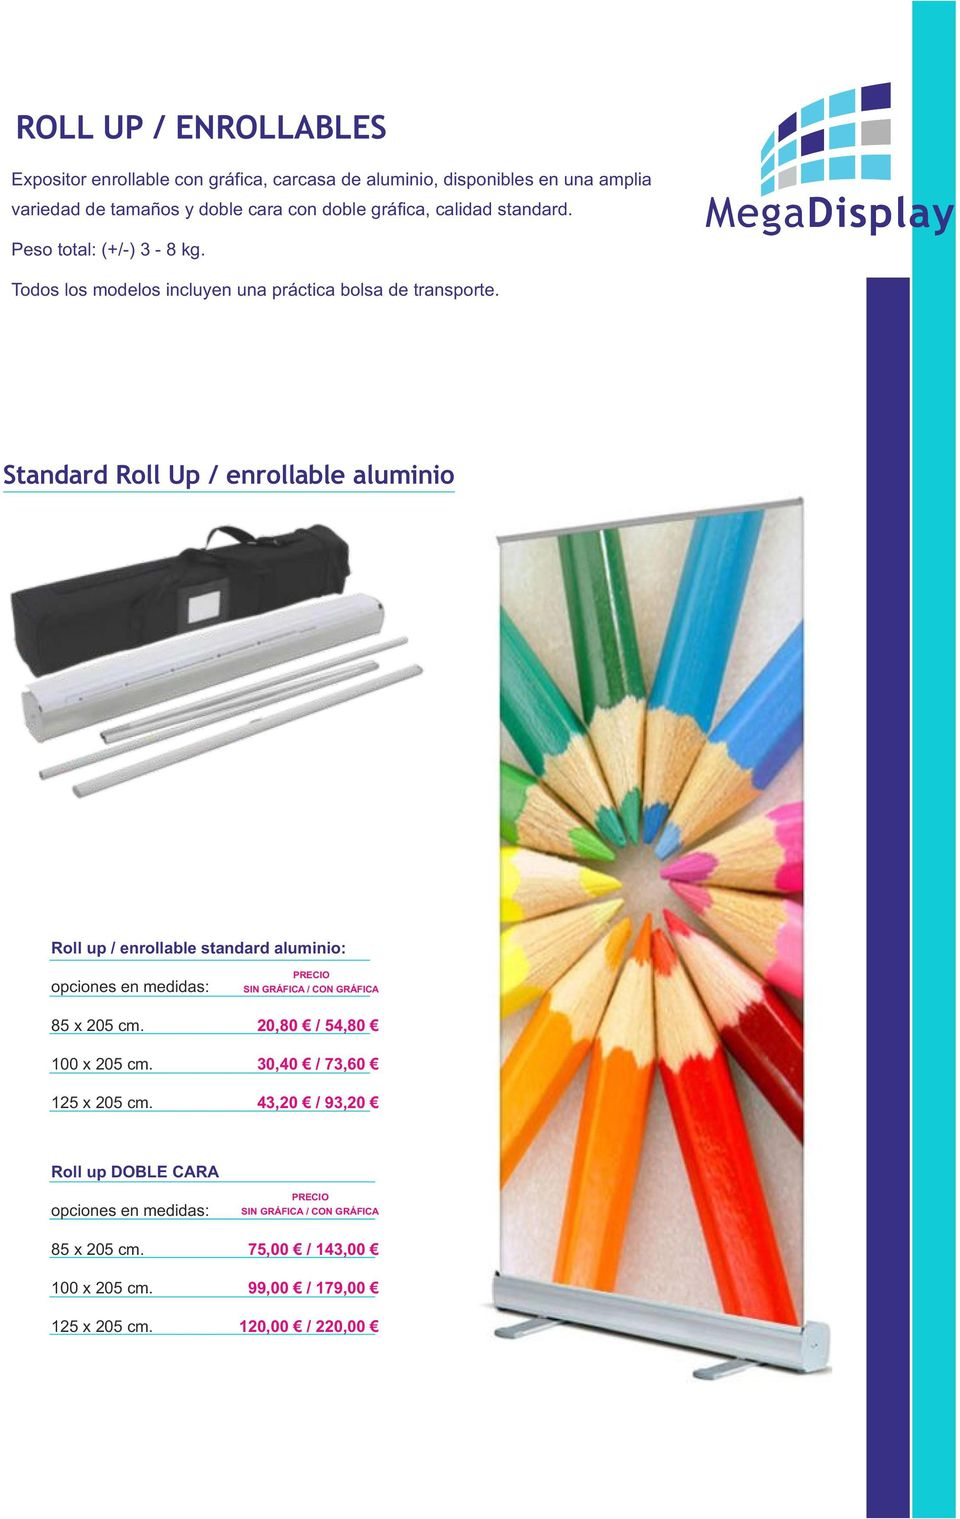 Standard Roll Up / enrollable aluminio Roll up / enrollable standard aluminio: opciones en medidas: 85 x 205 cm. 100 x 205 cm. 125 x 205 cm.